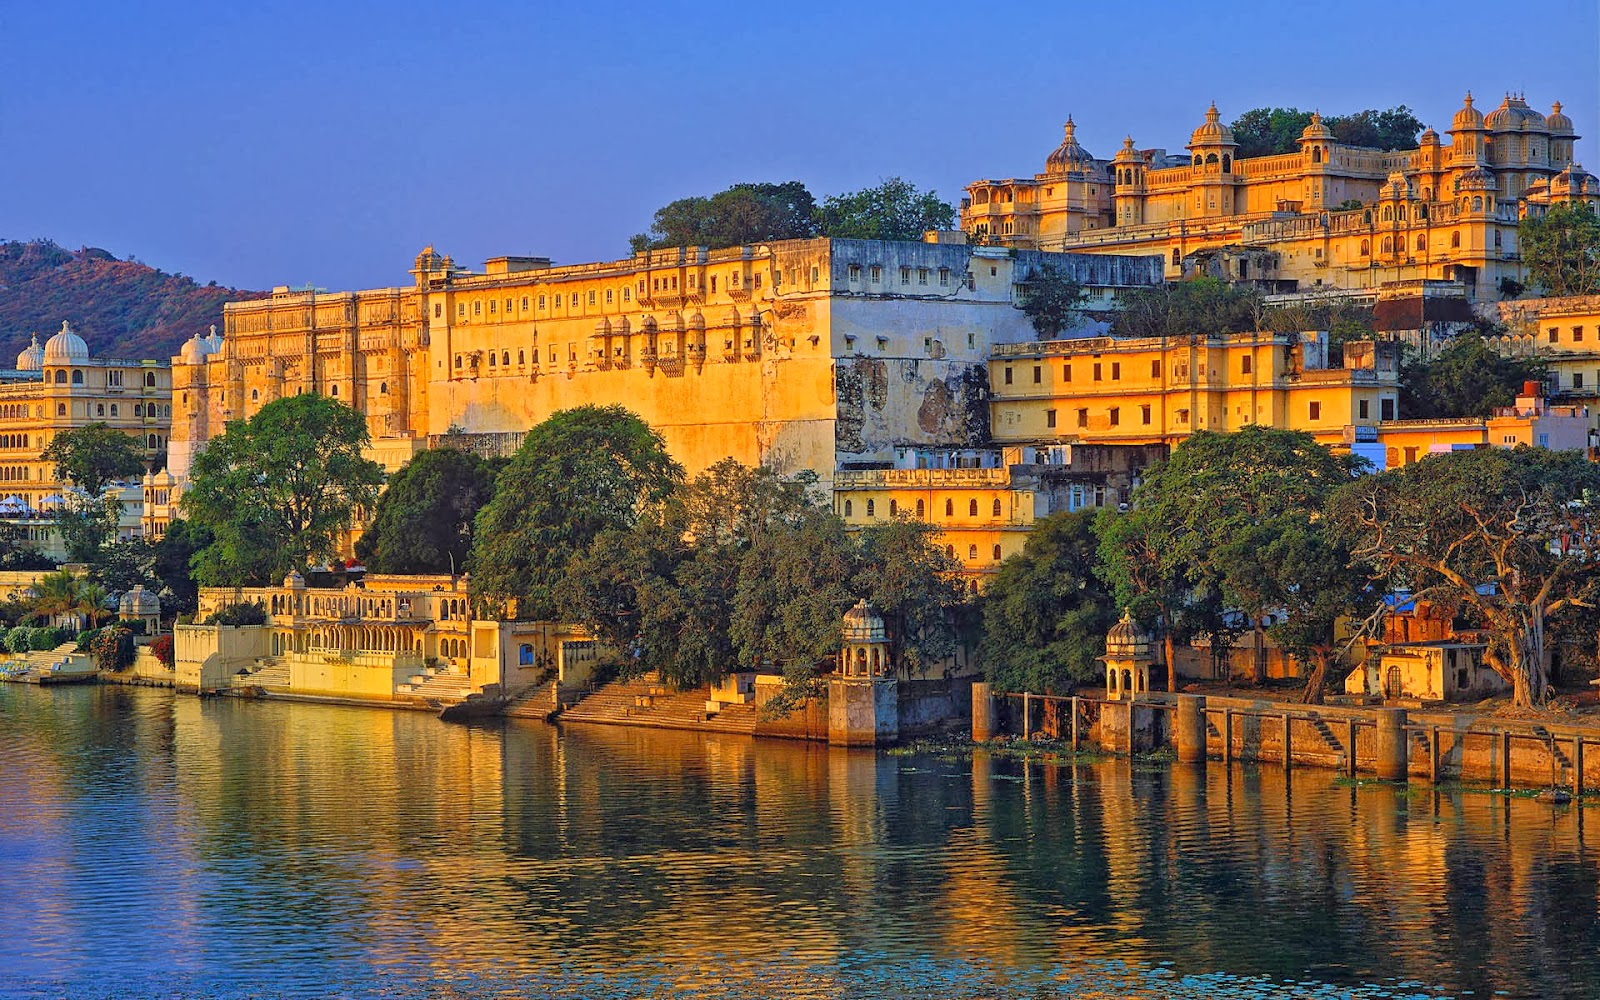 rajasthan-india-world-hd-wallpaper-1920x1200-7079.jpg